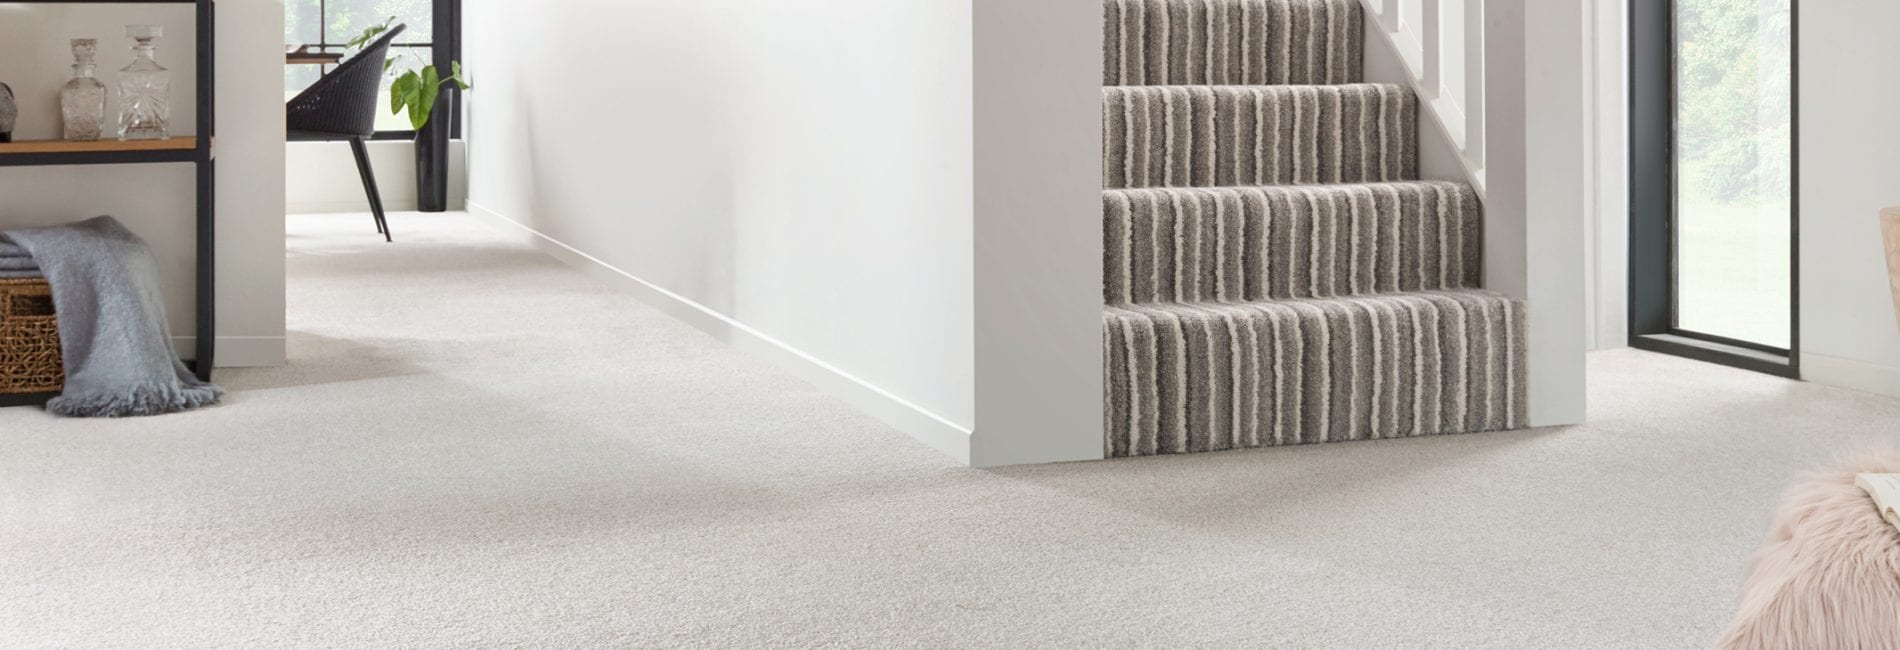 Carpet & Flooring | Leading UK Supplier of Floor Covering Products